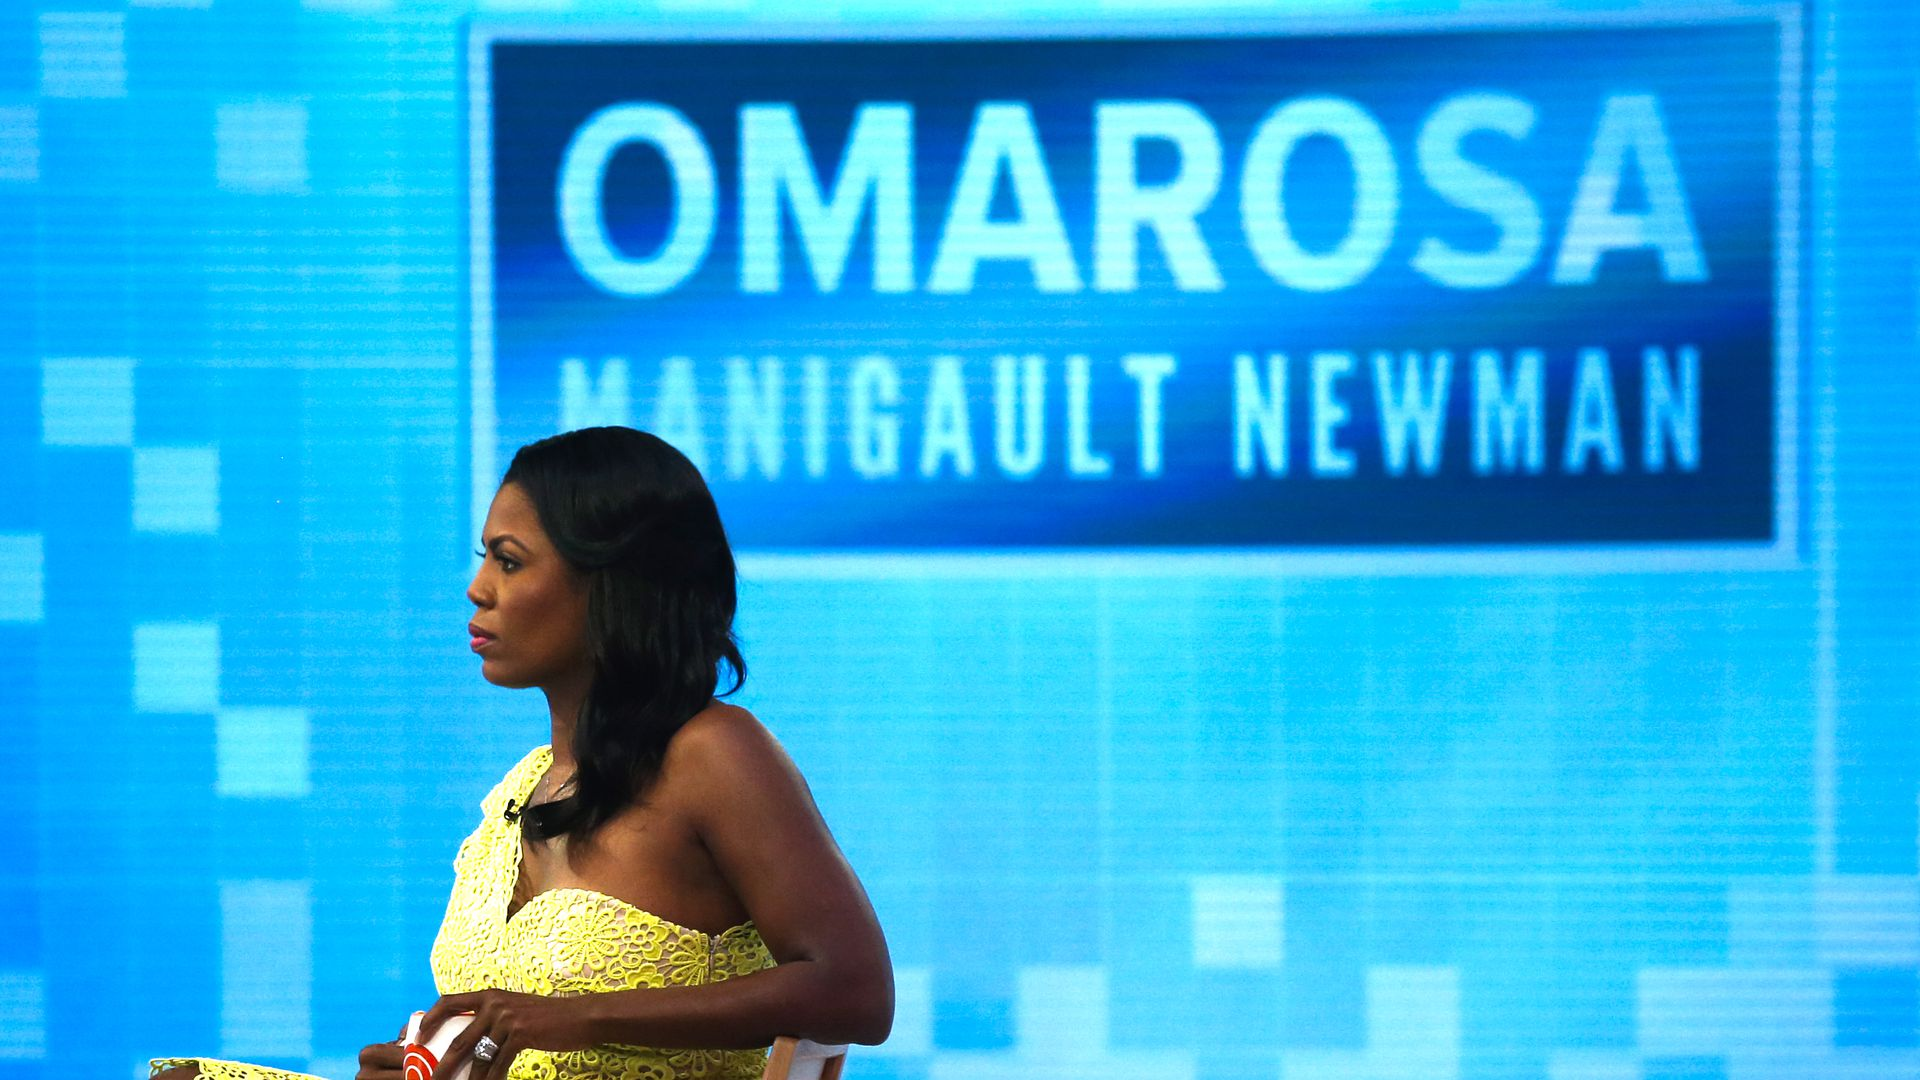 Omarosa Manigualt-Newma, former Trump aide. Photo: Eduardo Munoz Alvarez/Getty Images